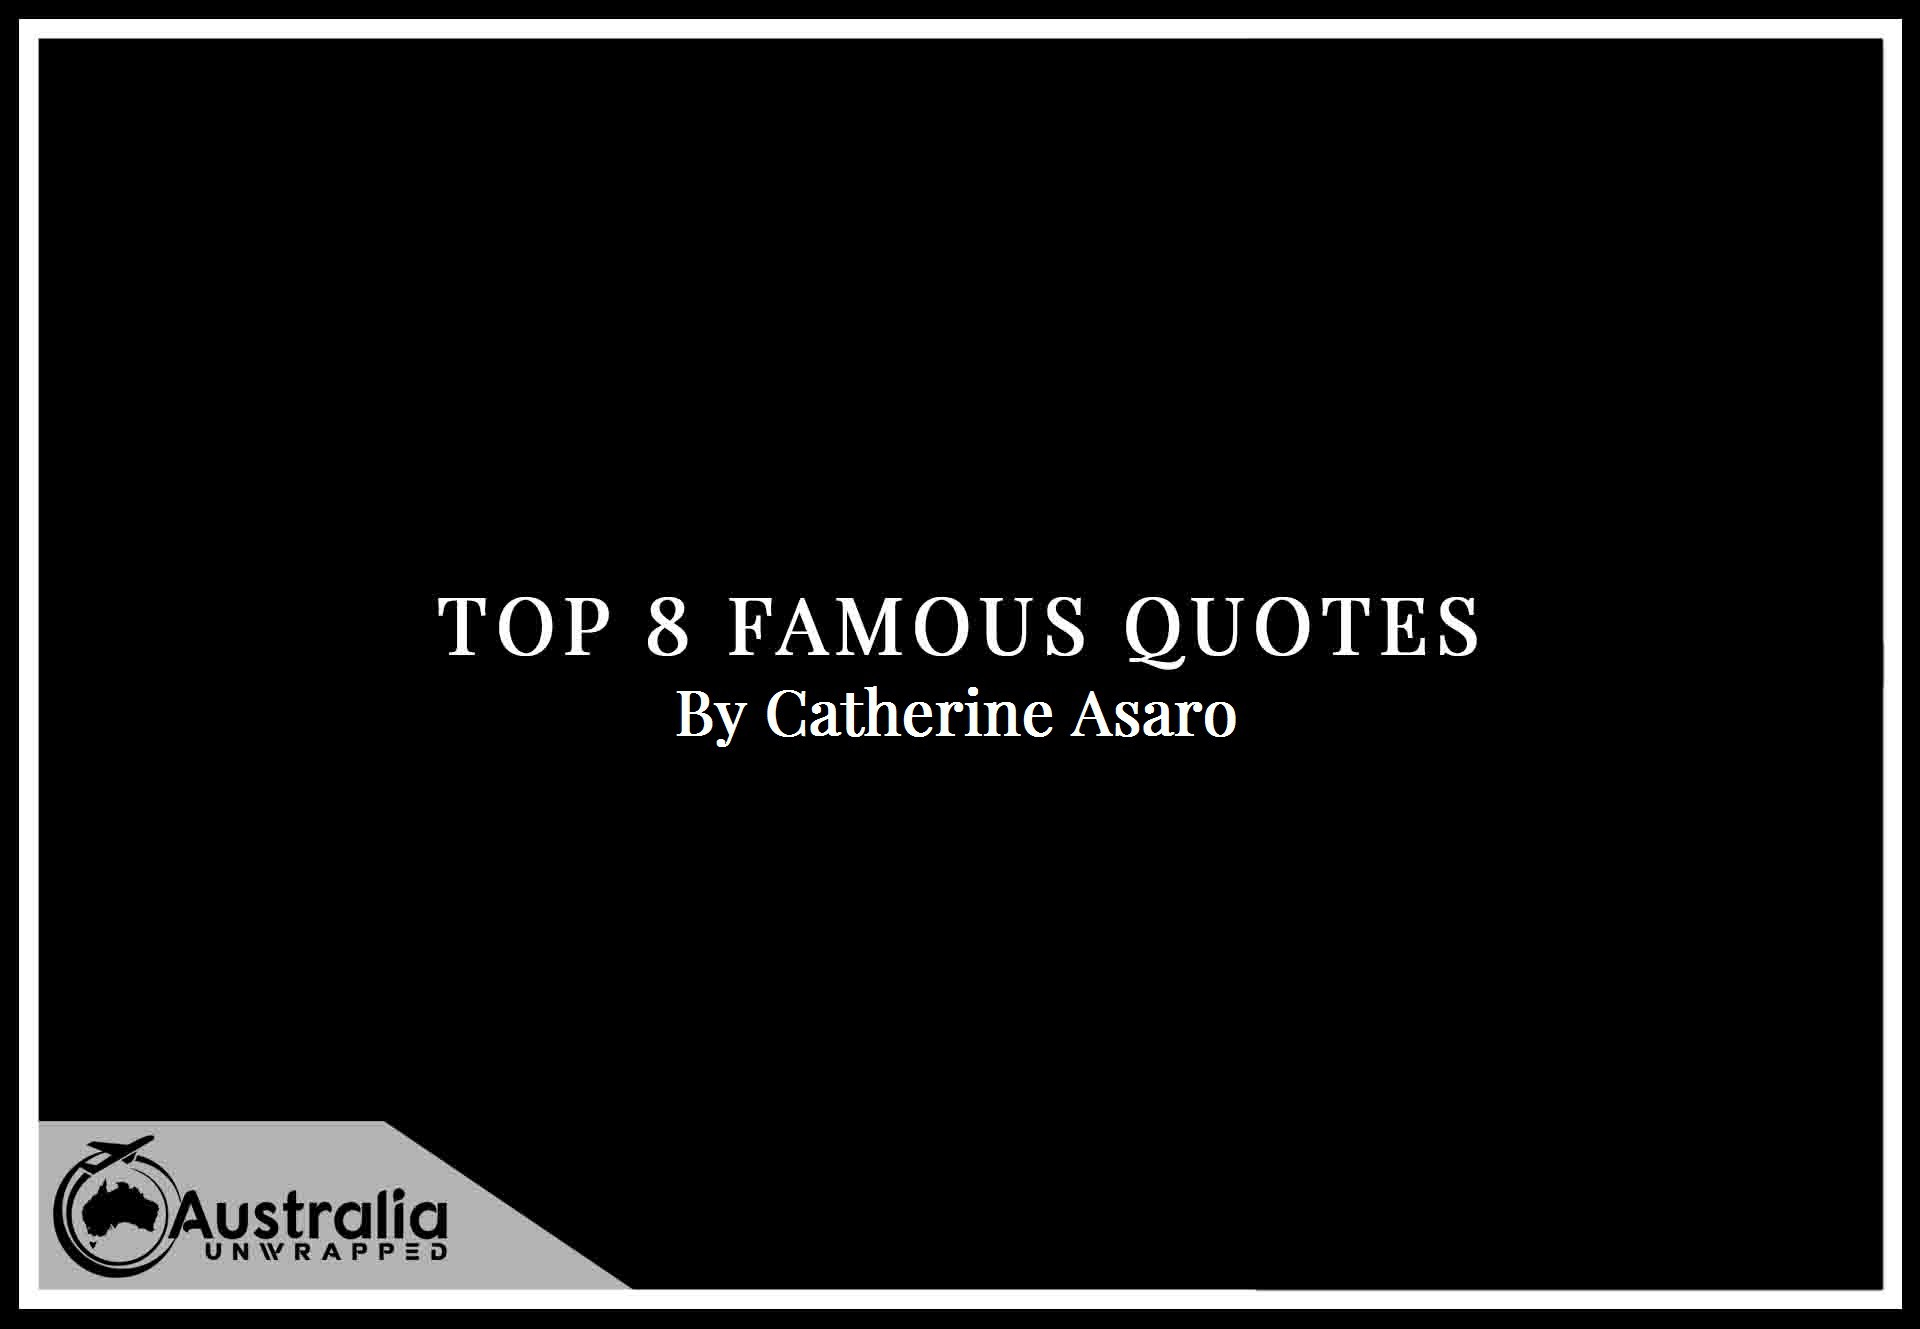 Catherine Asaro's Top 8 Popular and Famous Quotes